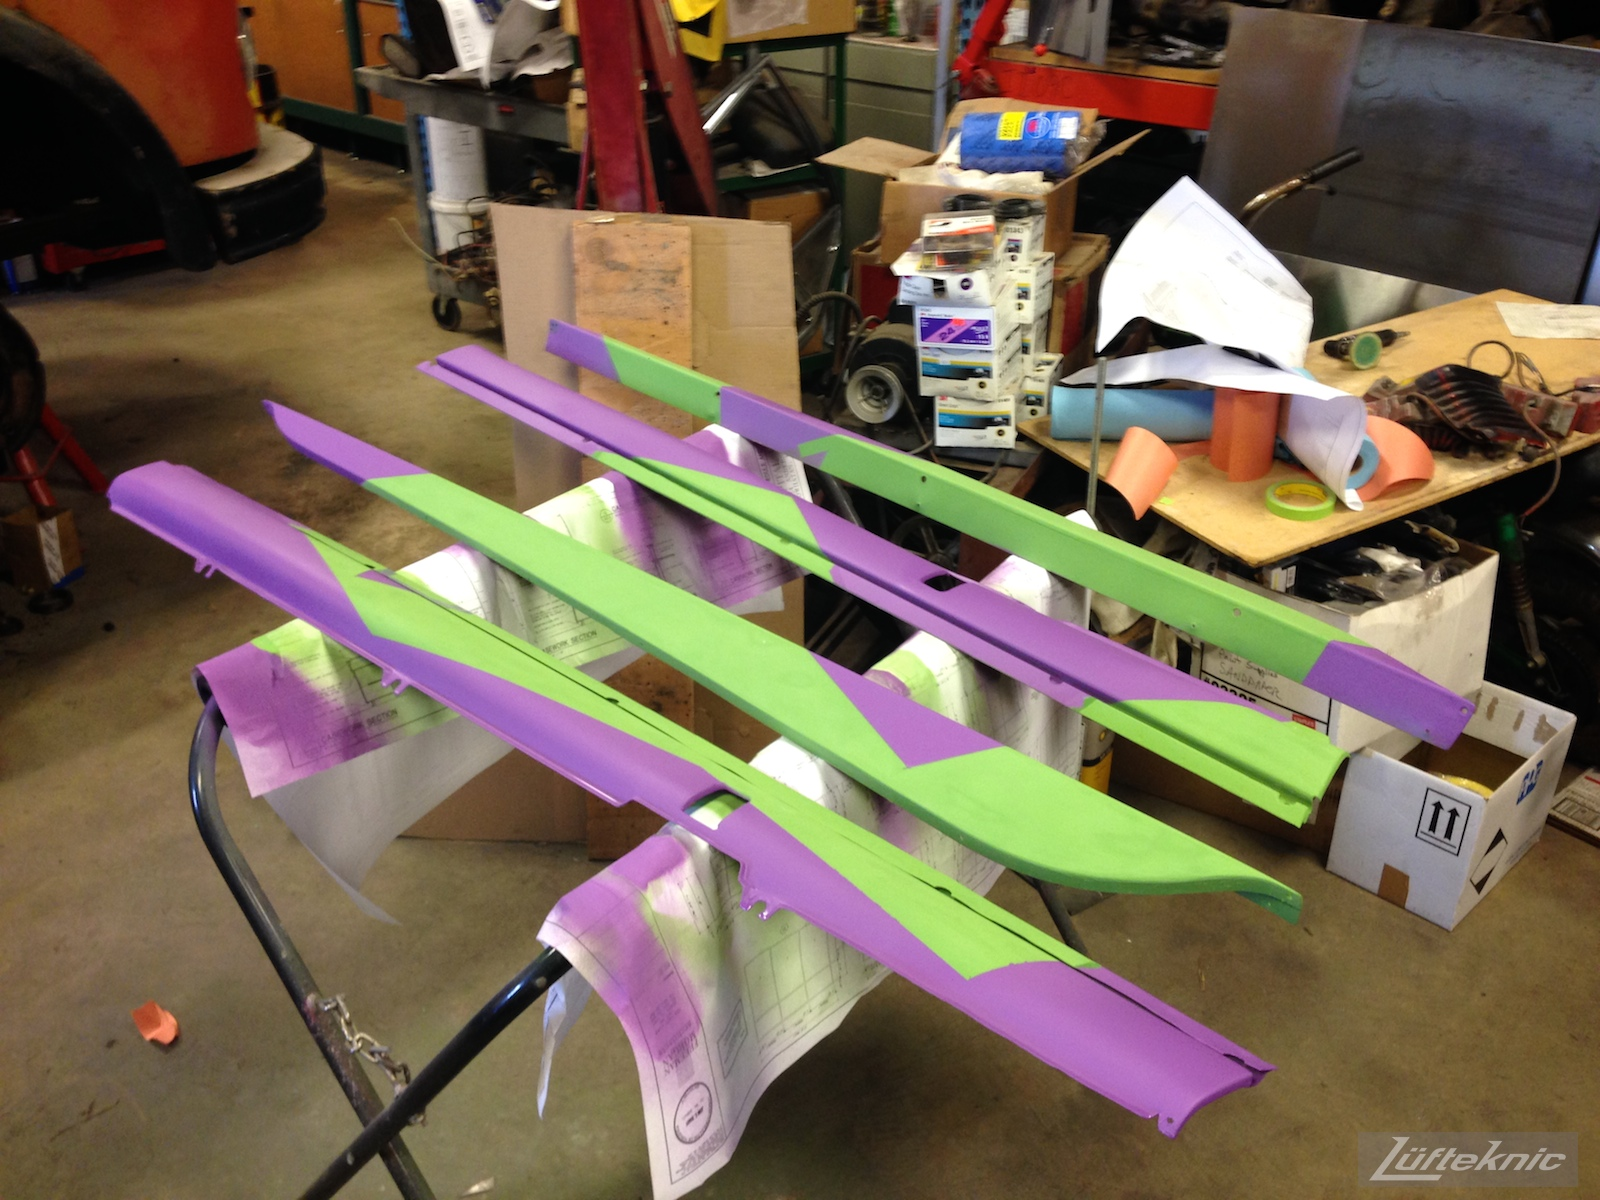 Lüfteknic #projectstuka Porsche 930 Turbo side skirts painted in purple and green